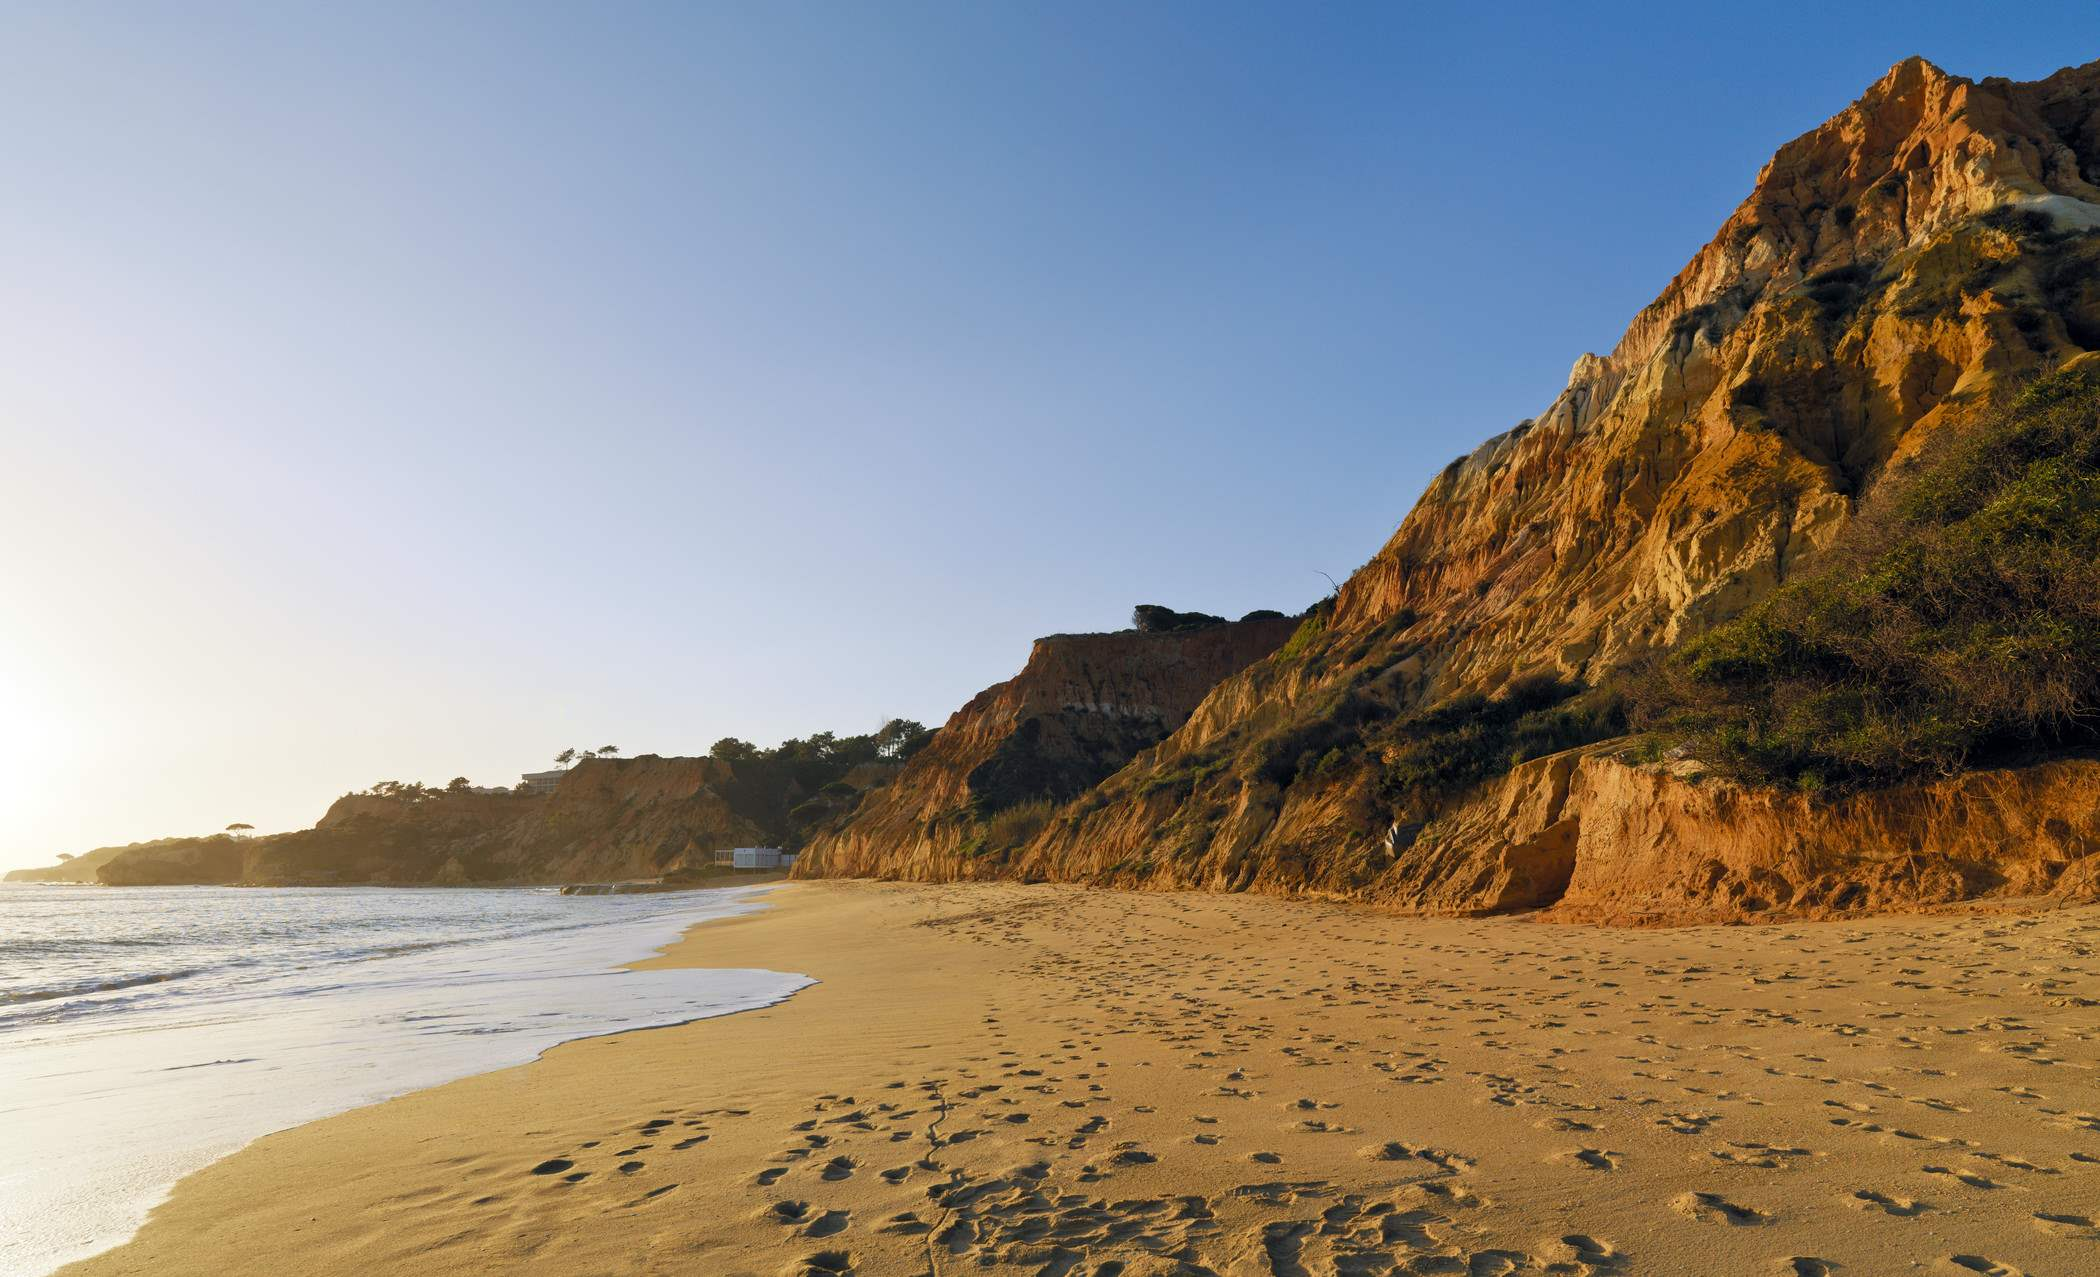 Pine Cliffs Gardens, Two Bedroom Suite, S/C Basis, 2 bedroom apartment in Pine Cliffs Resort, Algarve Photo #25